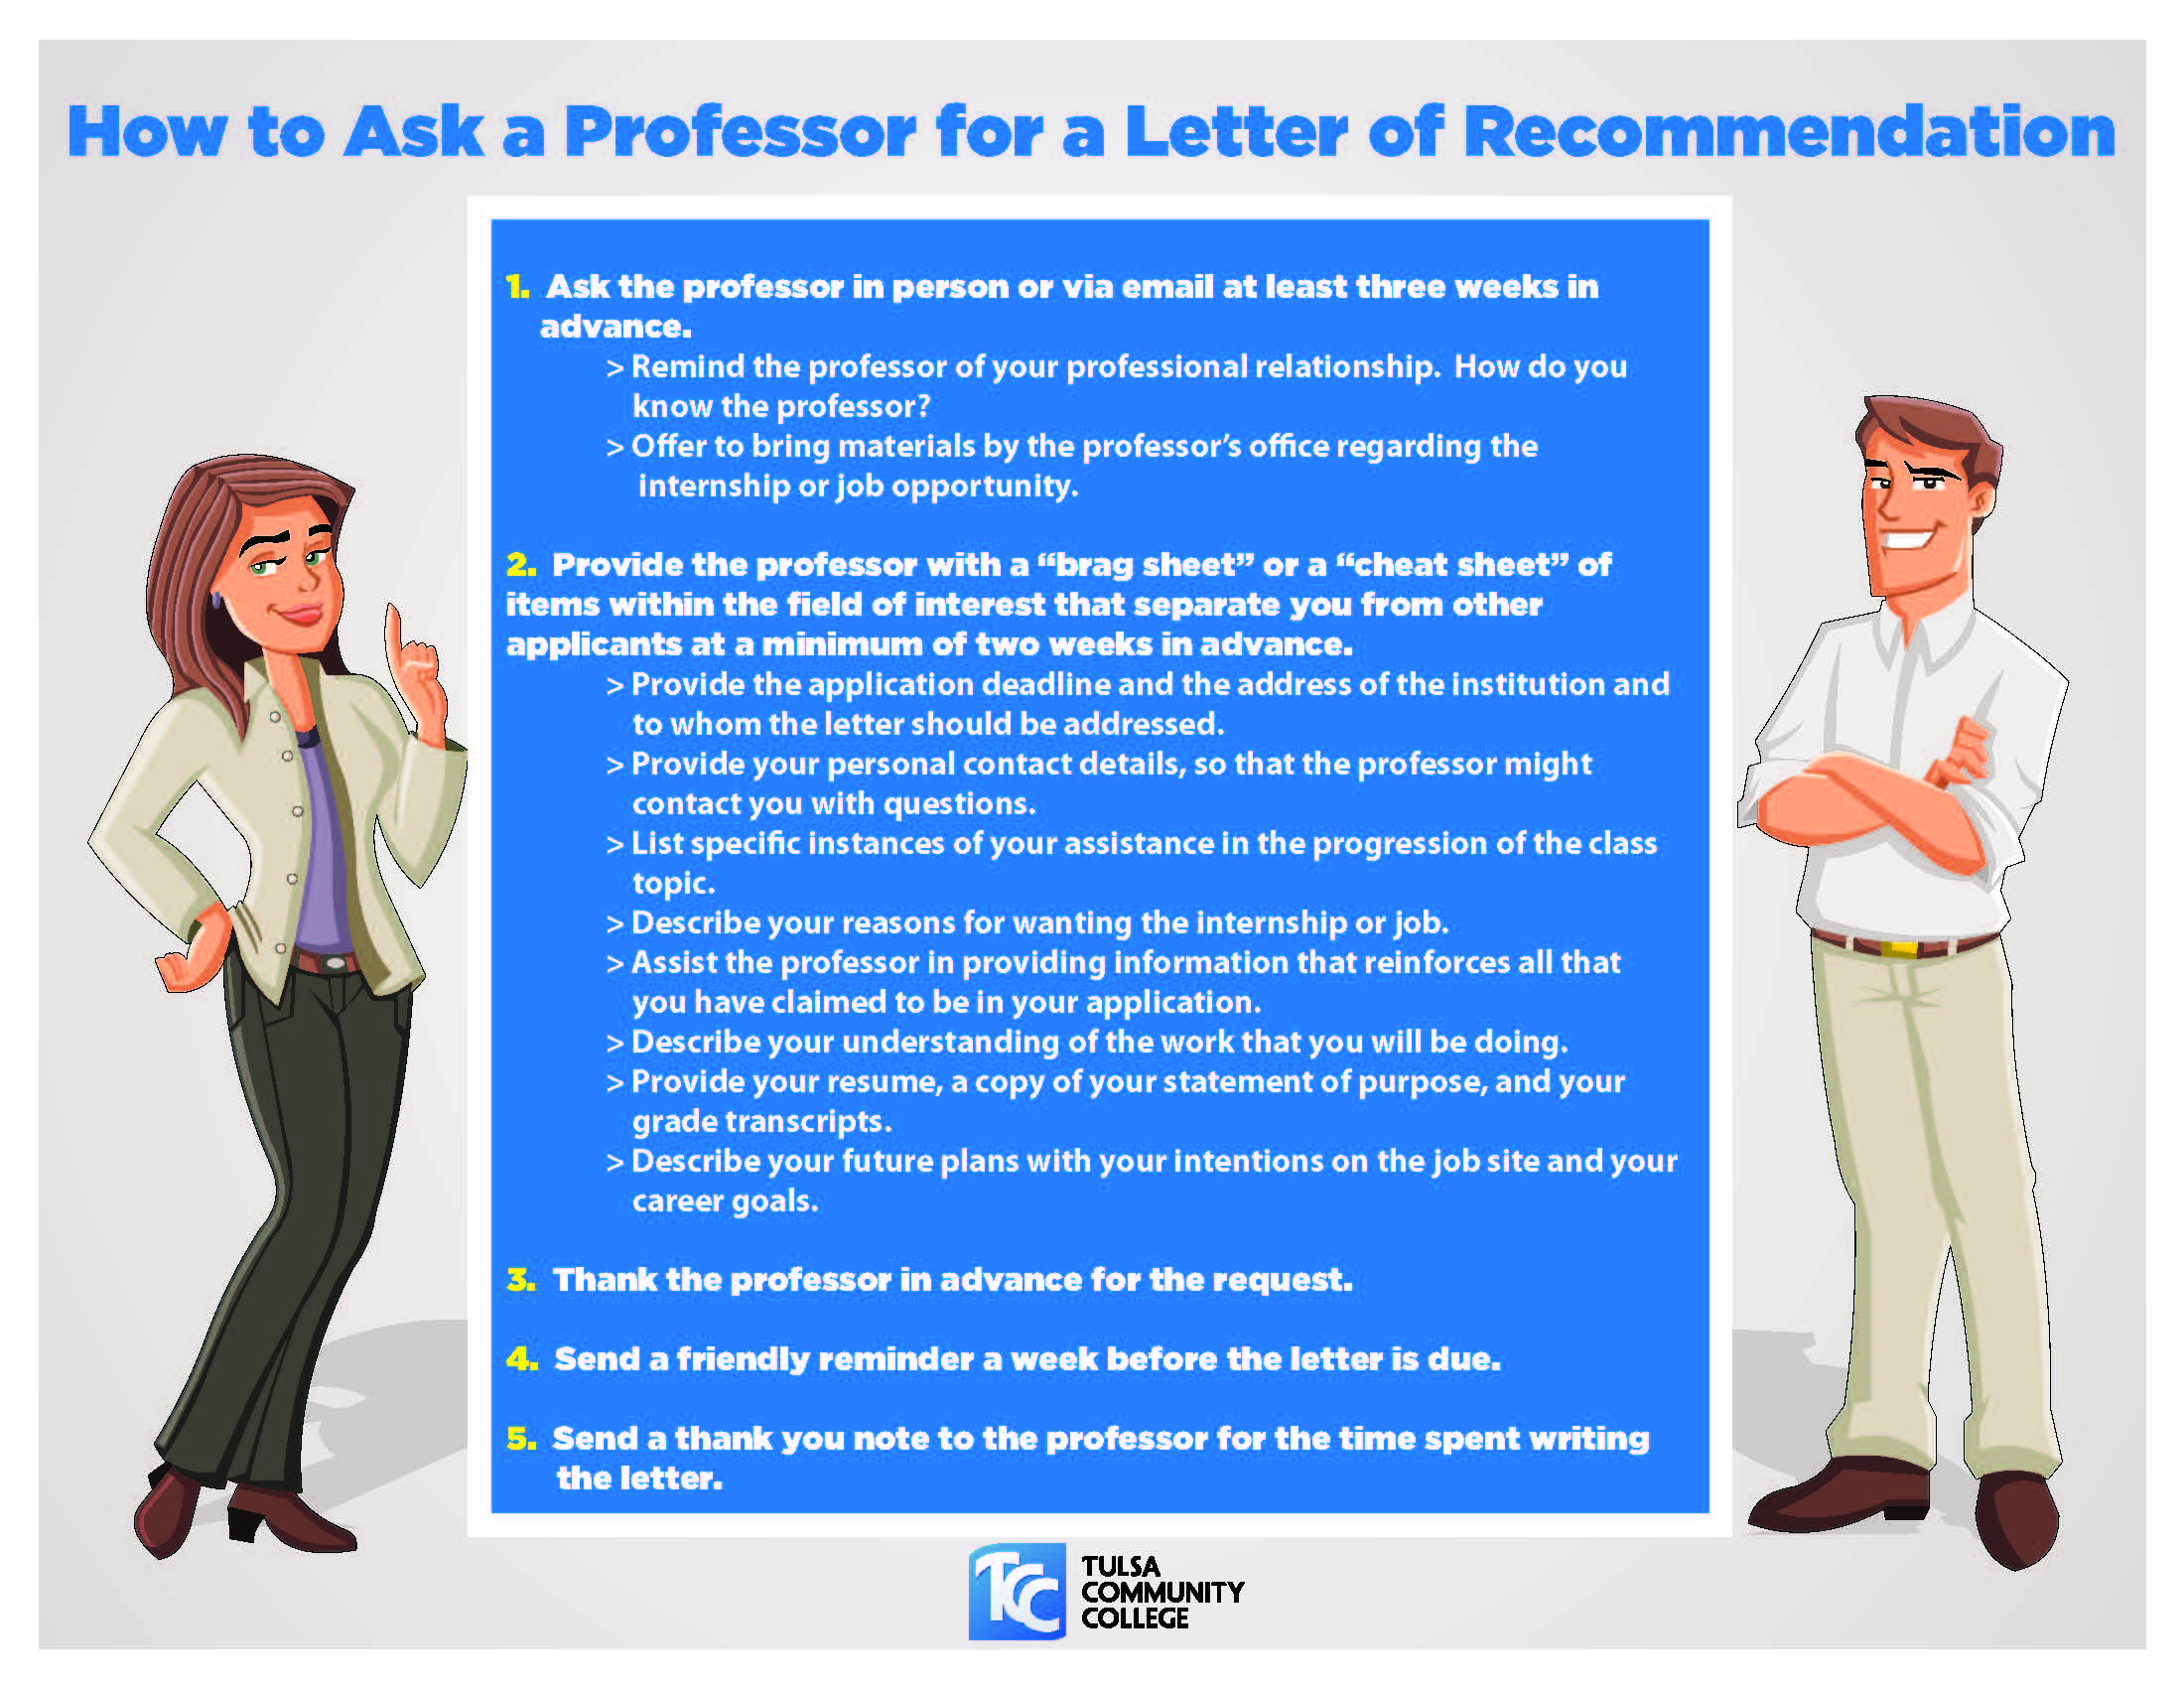 How to Ask a Professor for a Letter of Recommendation